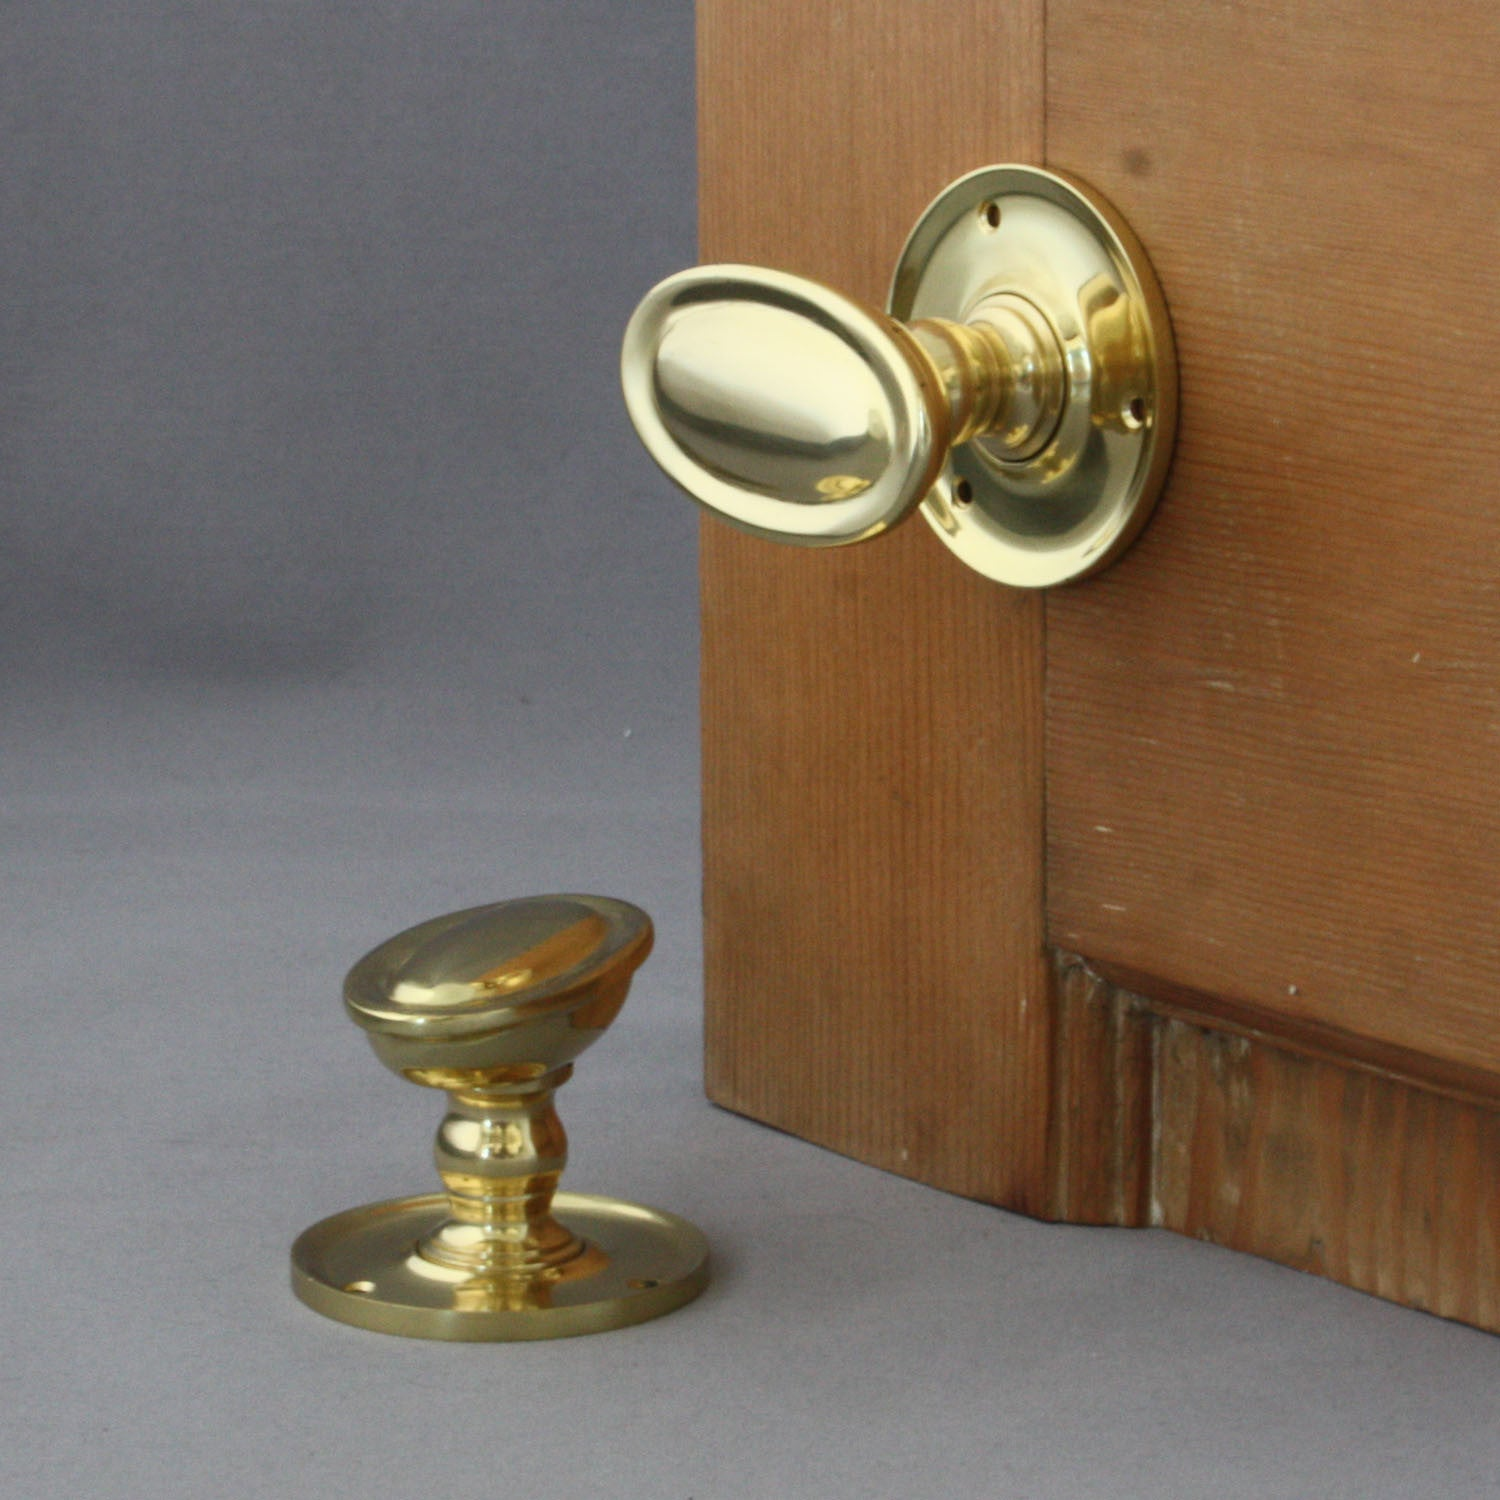 Edwardian Brass Oval Door Knobs | Architectural Decor